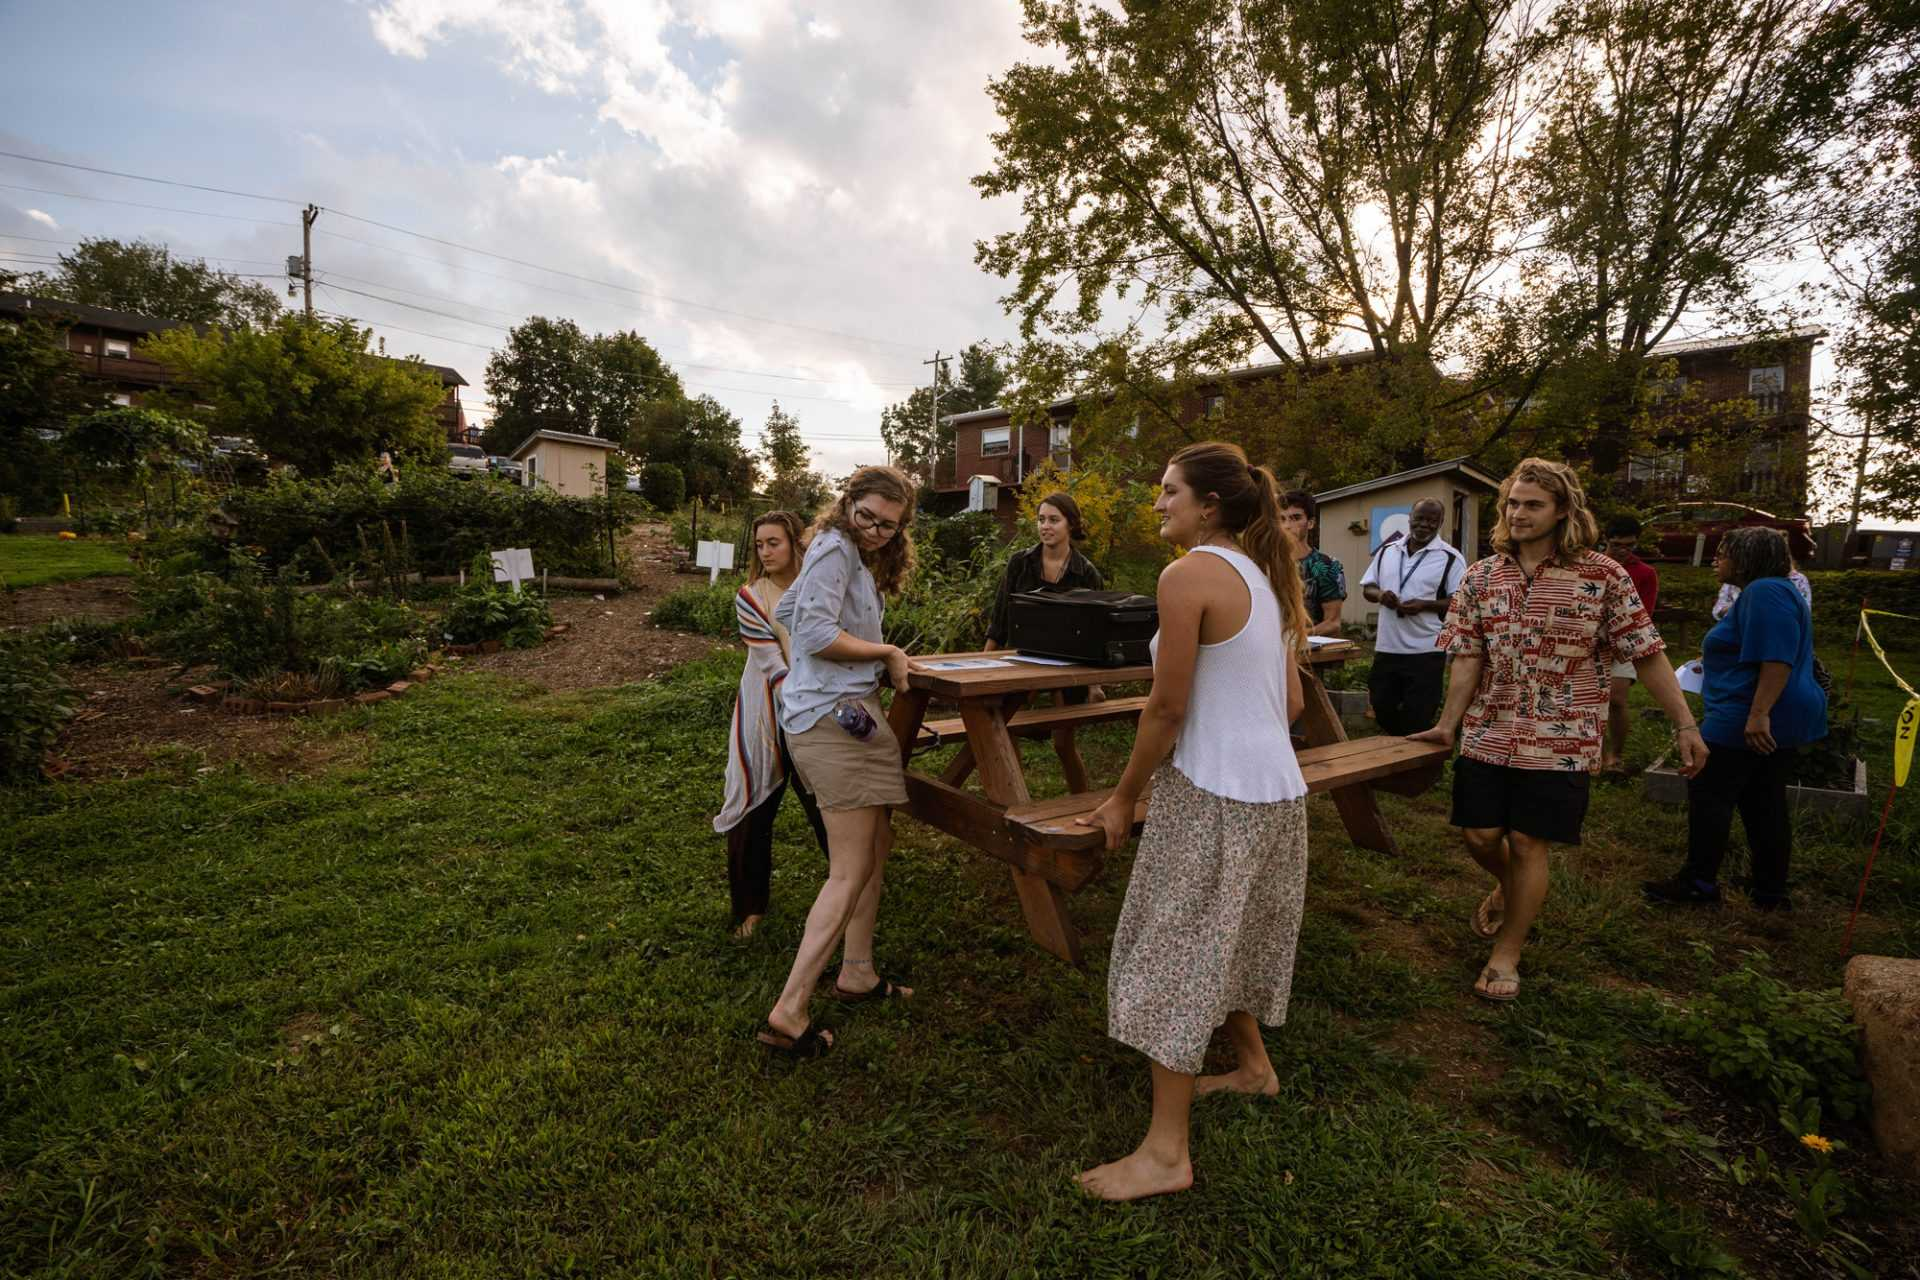 Equinox celebration marks new season for Appalachian Roots Garden